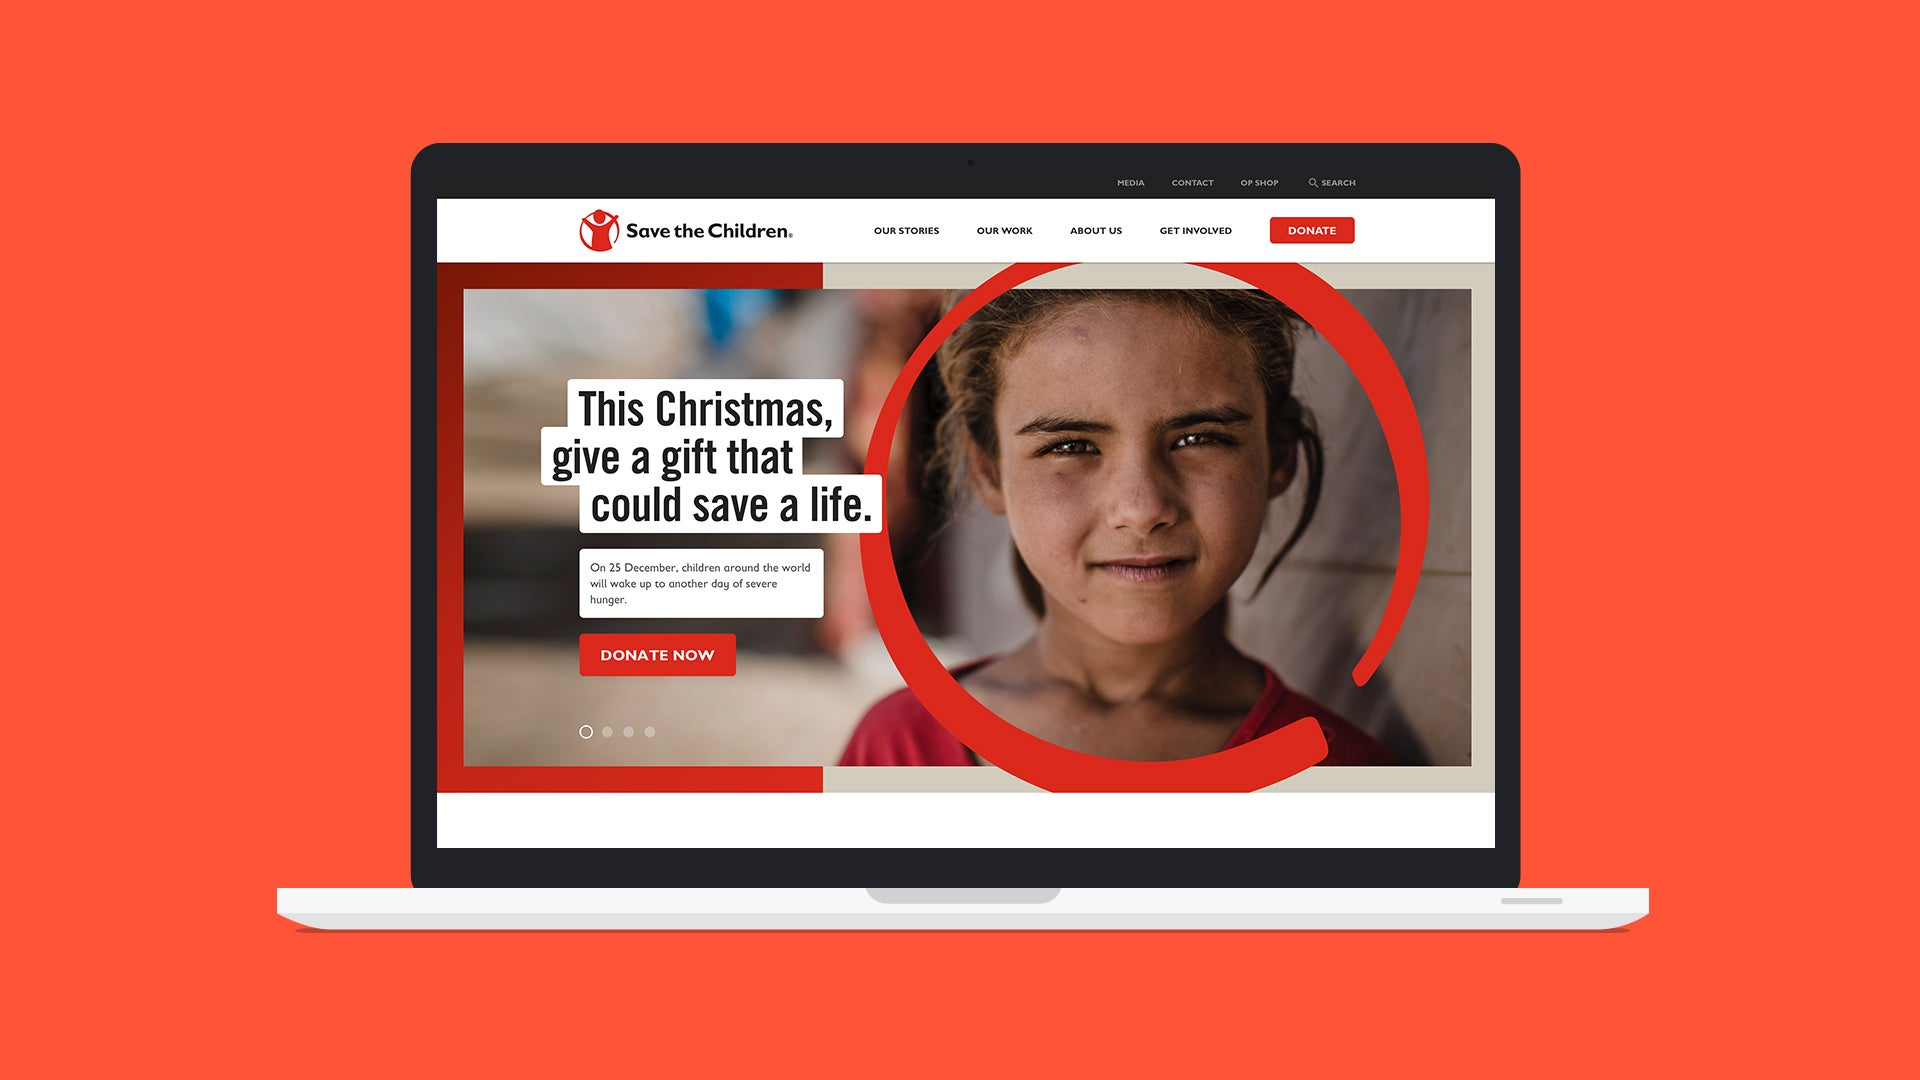 Save the Children Christmas appeal screen shot